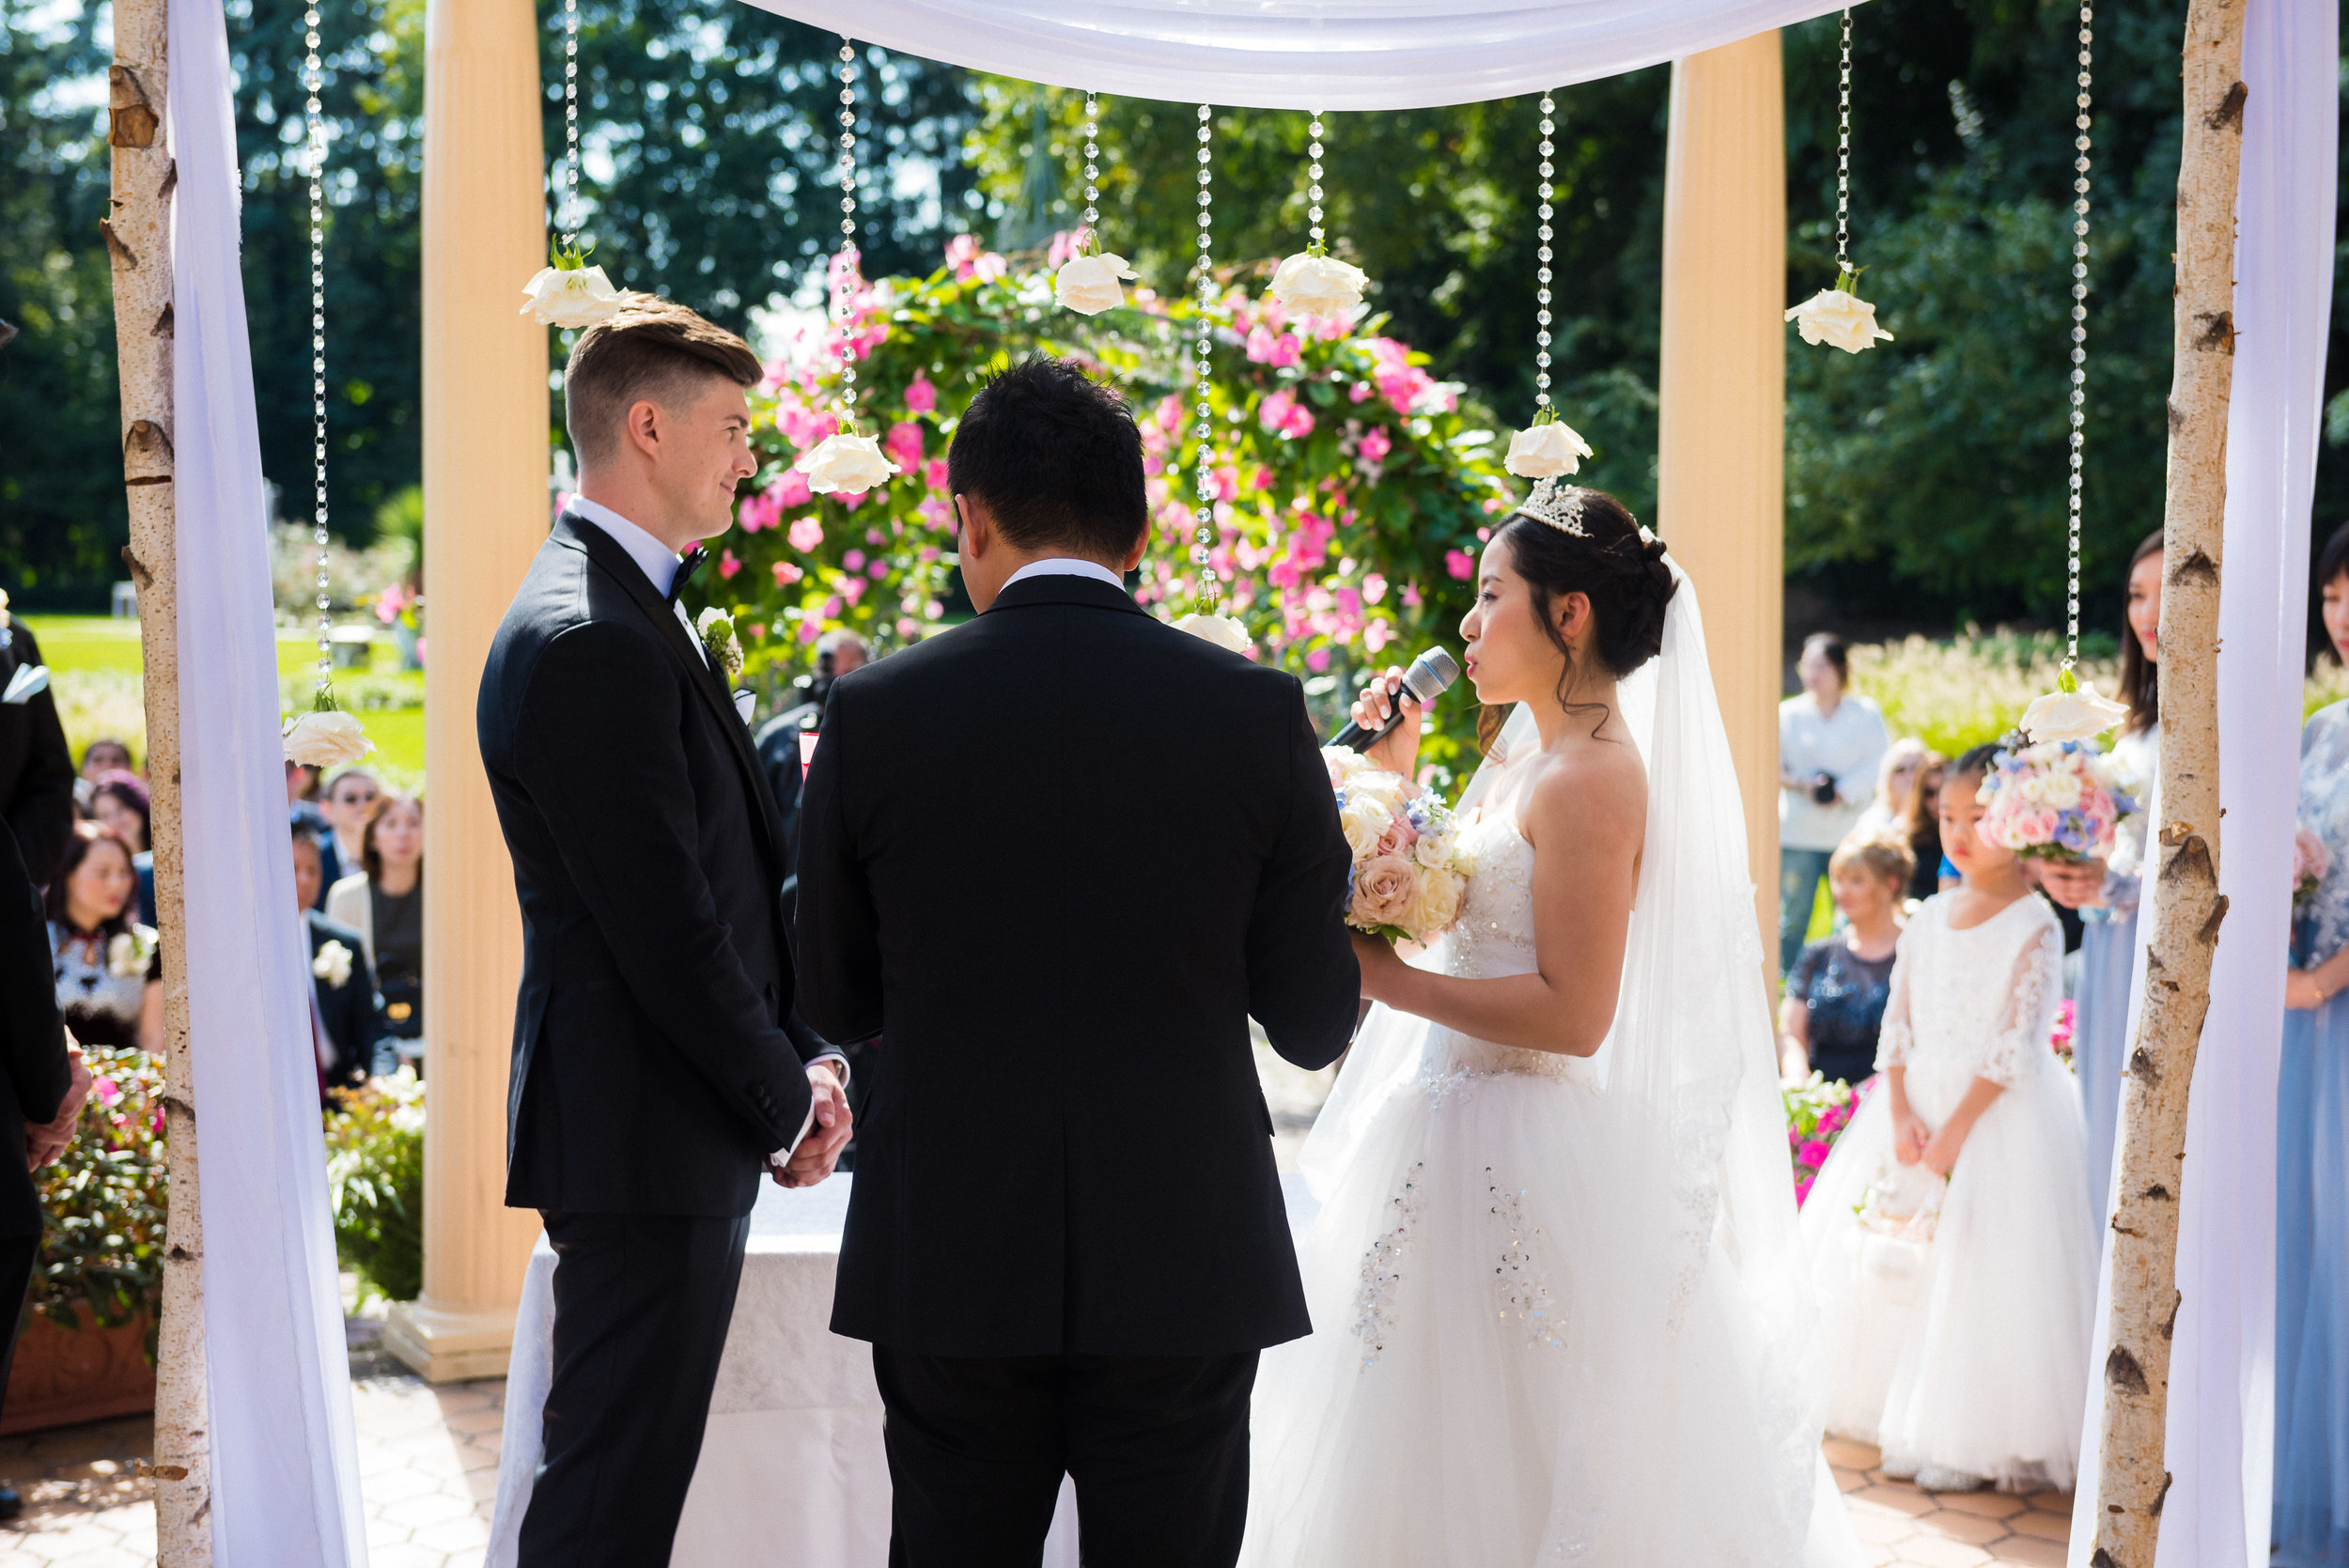 ping and brent both had their own vows during their ceremony. i like the view from behind because you get to see their friends and family in the background watch this new jersey wedding in west orange at the manor.